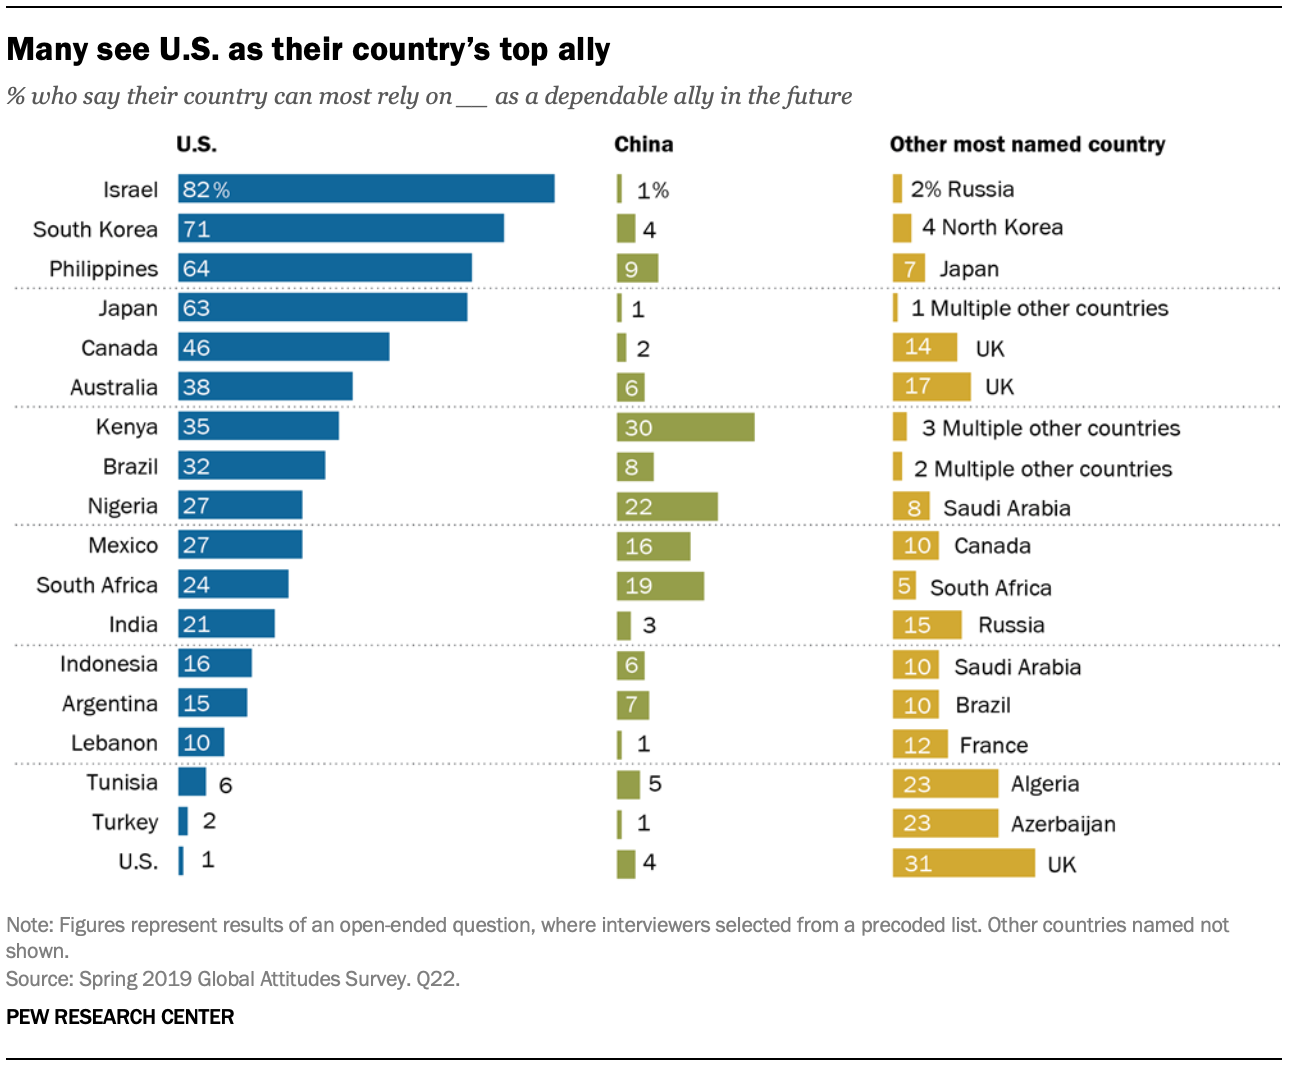 A chart showing that many see U.S. as their country's top ally